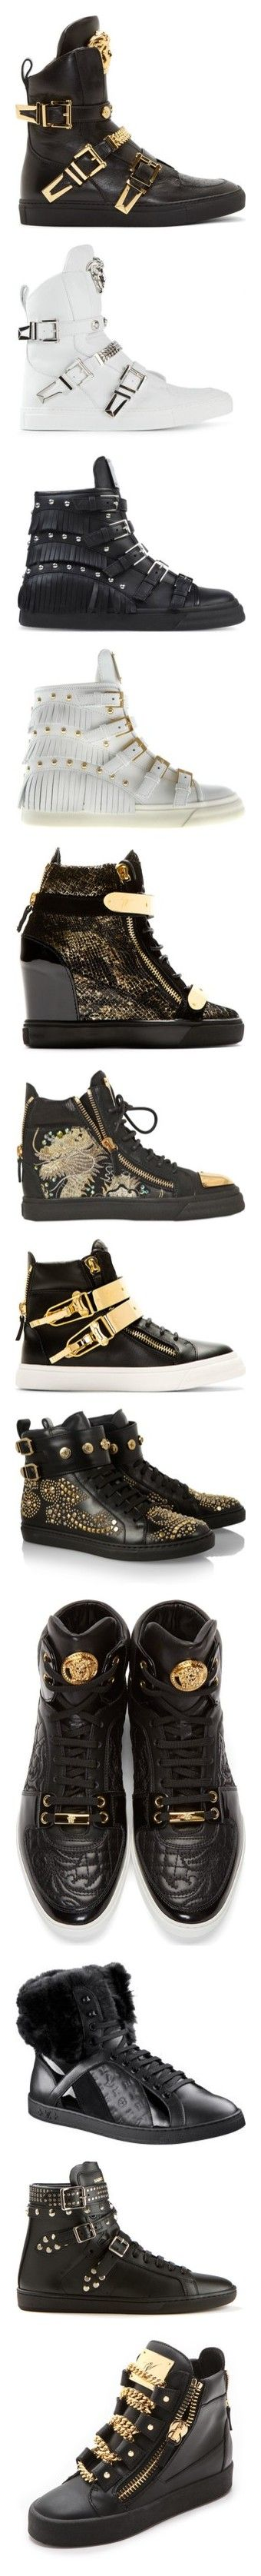 """""""Ultimate 'Designer Sneaker' Collection Pt. II"""" by dazzlingdondiva ❤ liked on Polyvore featuring shoes, sneakers, men, versace, black leather shoes, versace sneakers, leather hi top sneakers, black hi tops, leather high top sneakers and white leather sneakers"""